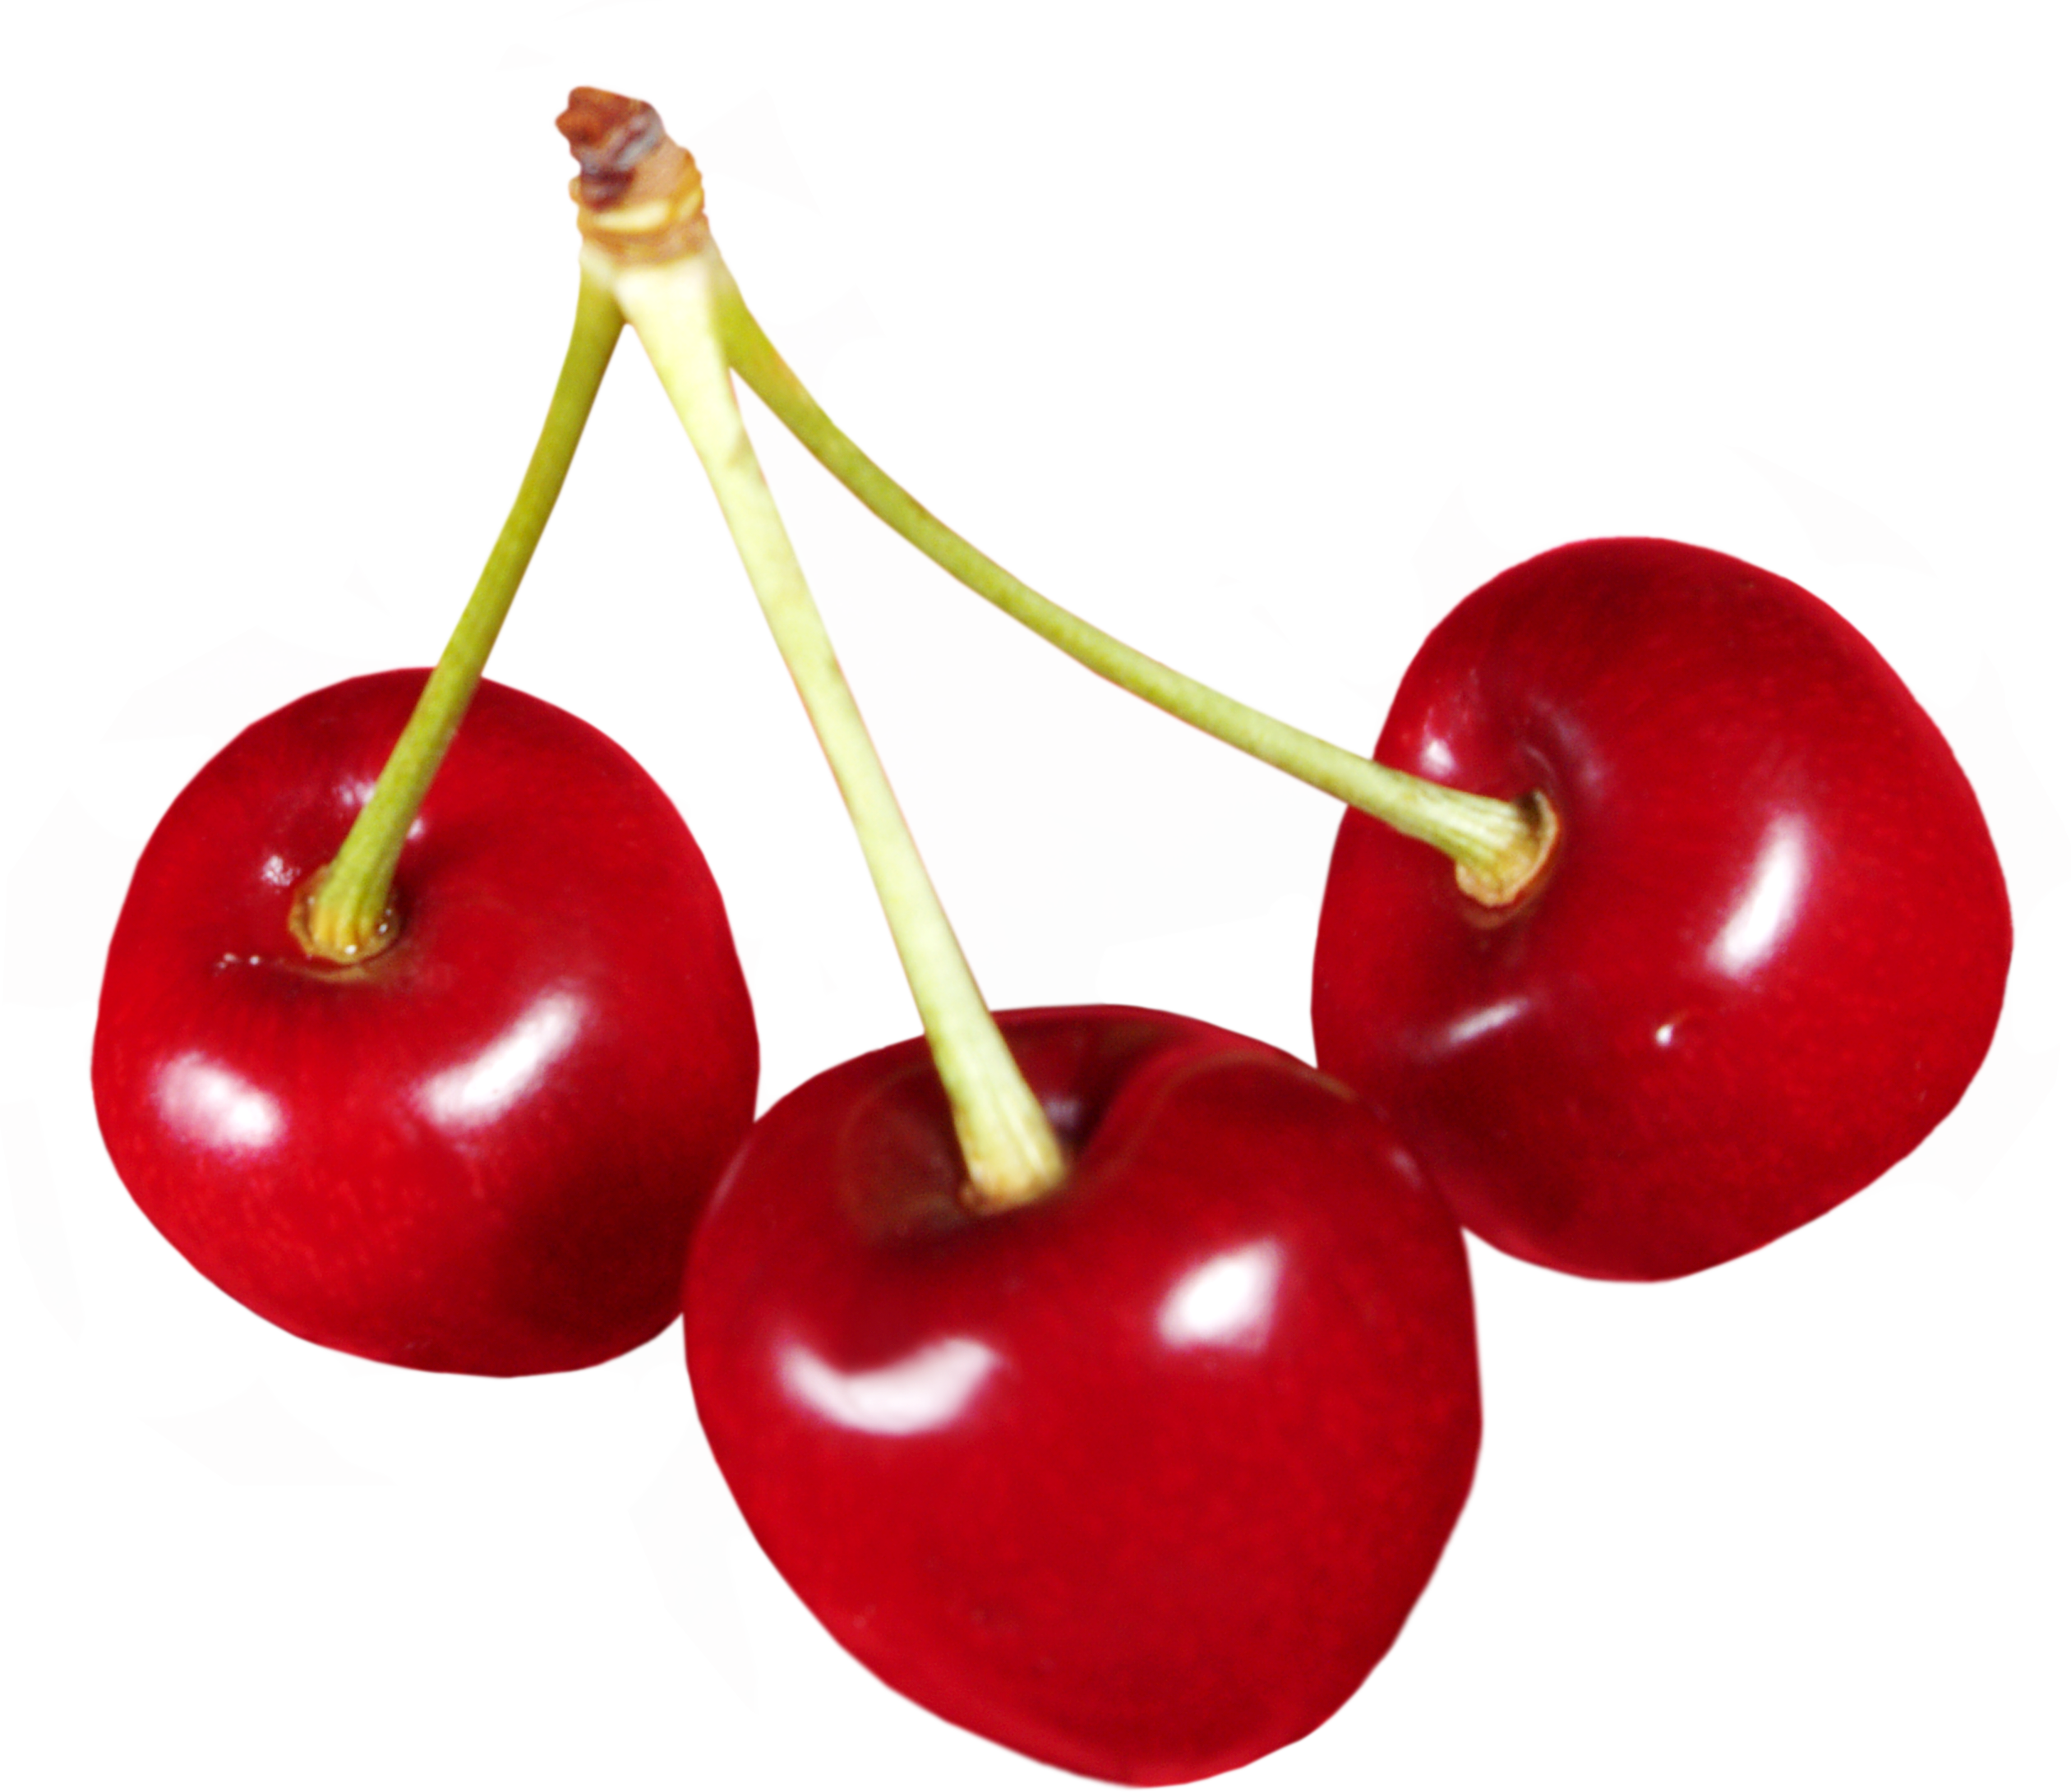 Cherry PNG - 26338